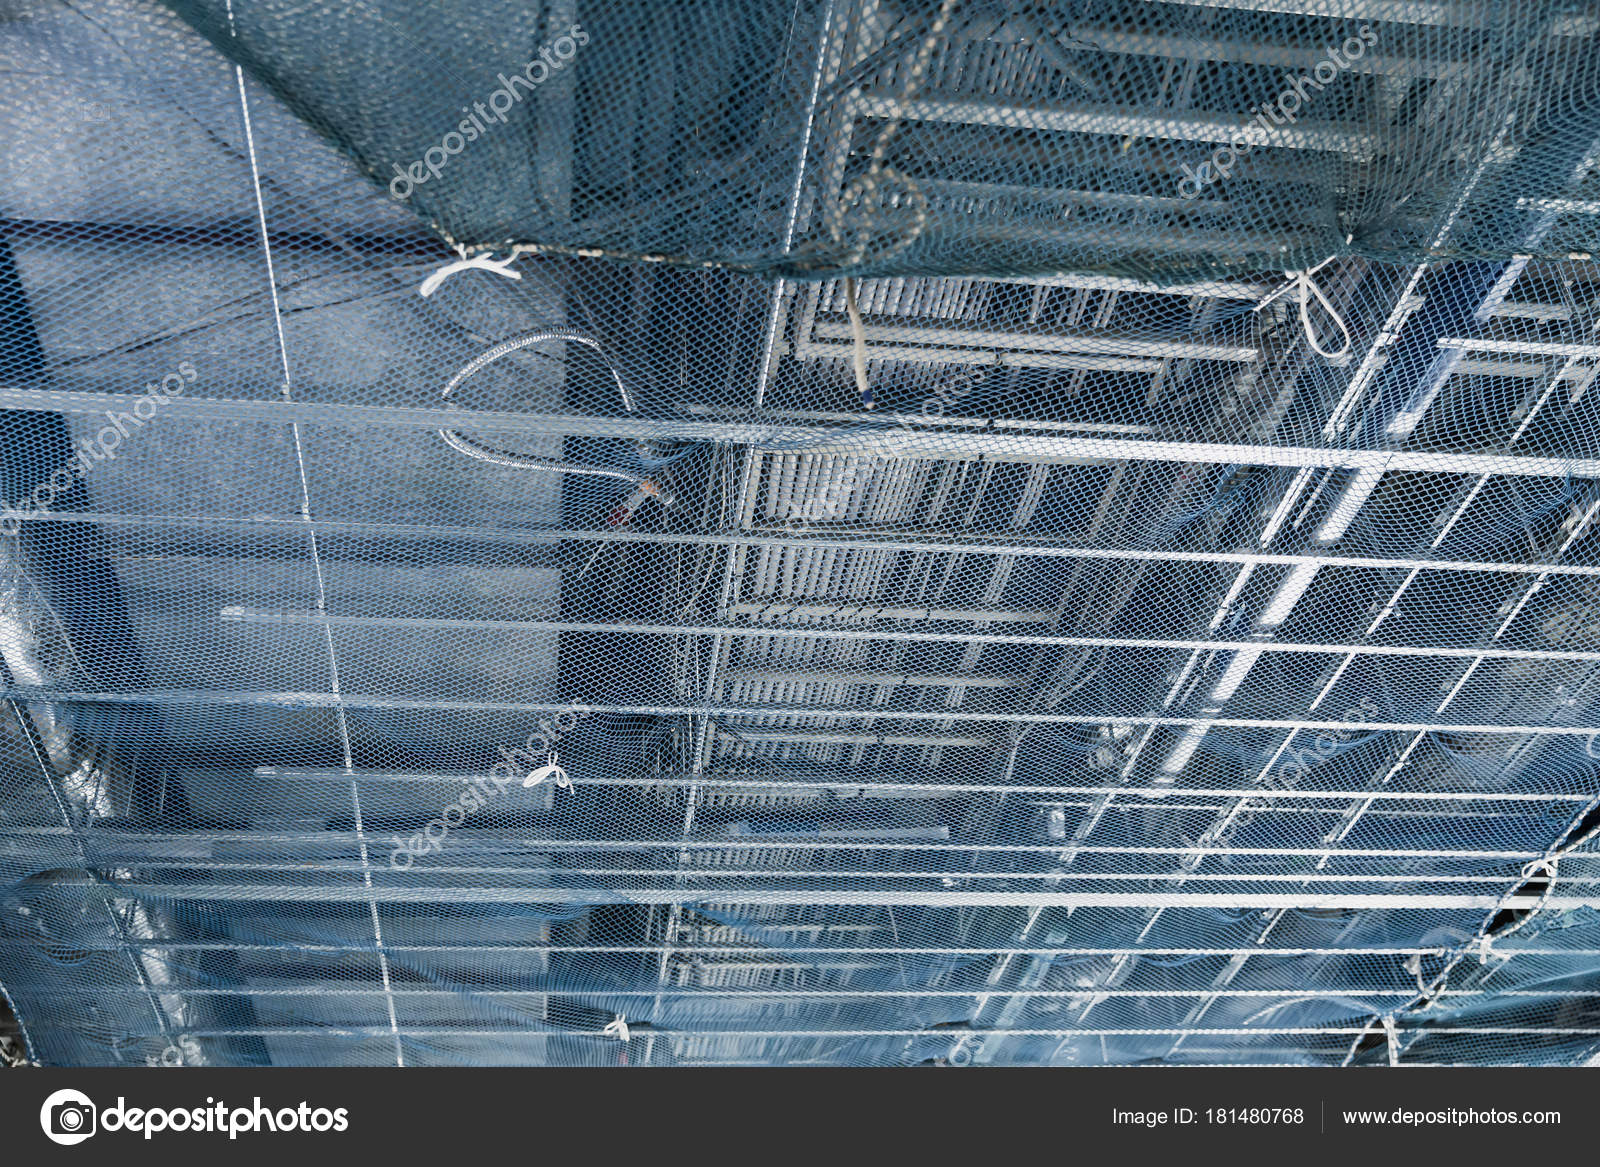 Metal Cable Conduit Flex Pipe Ceiling Constraction Temporary Flexible Wiring Net Stock Photo